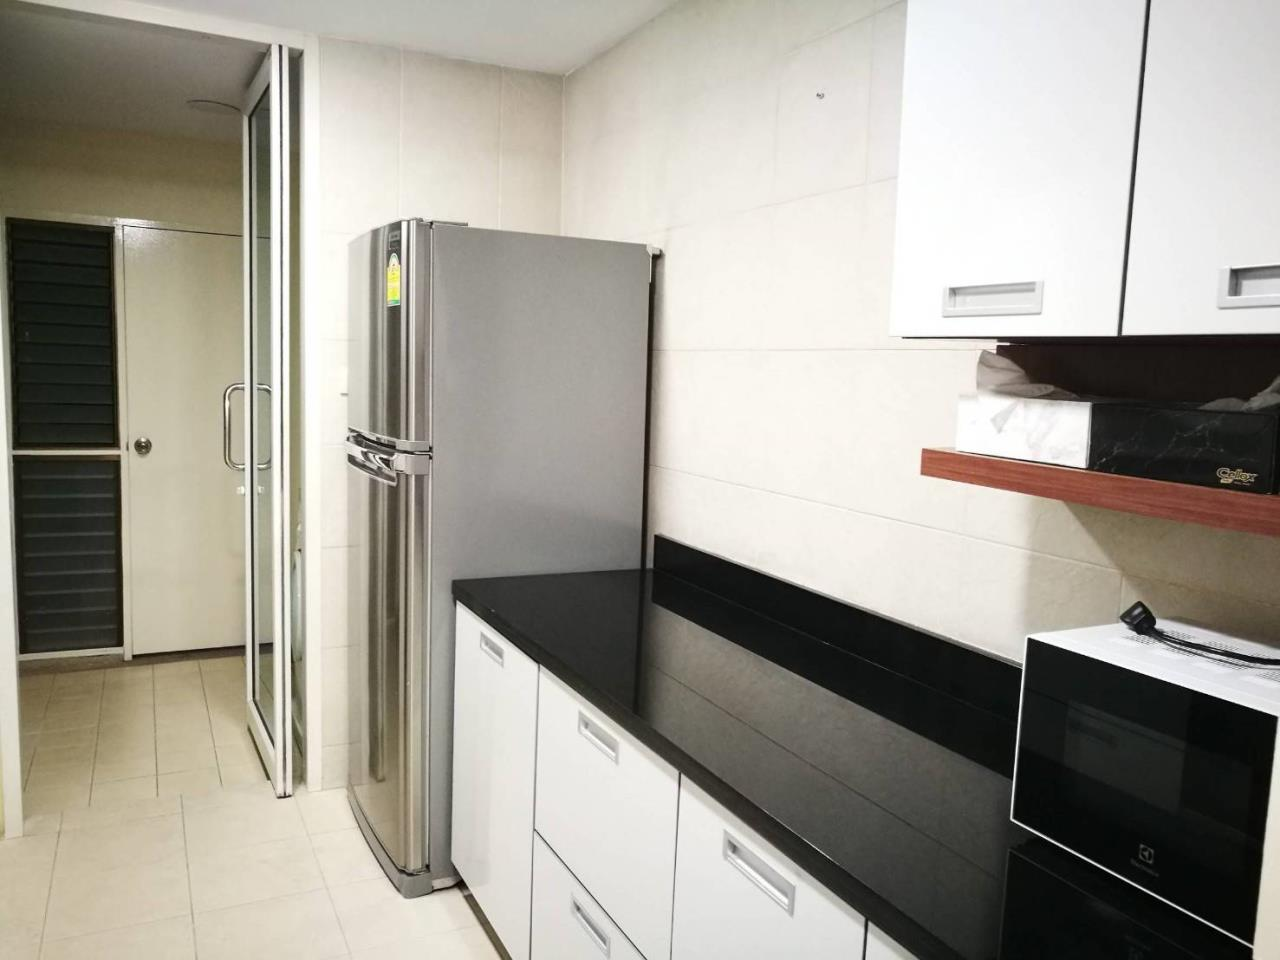 Bestbkkcondos Agency's Wilshire Condo Sukhumvit 22 - 140 SQ.M - for rent: 70,000 THB - 2 bedrooms, 2 bathrooms 2